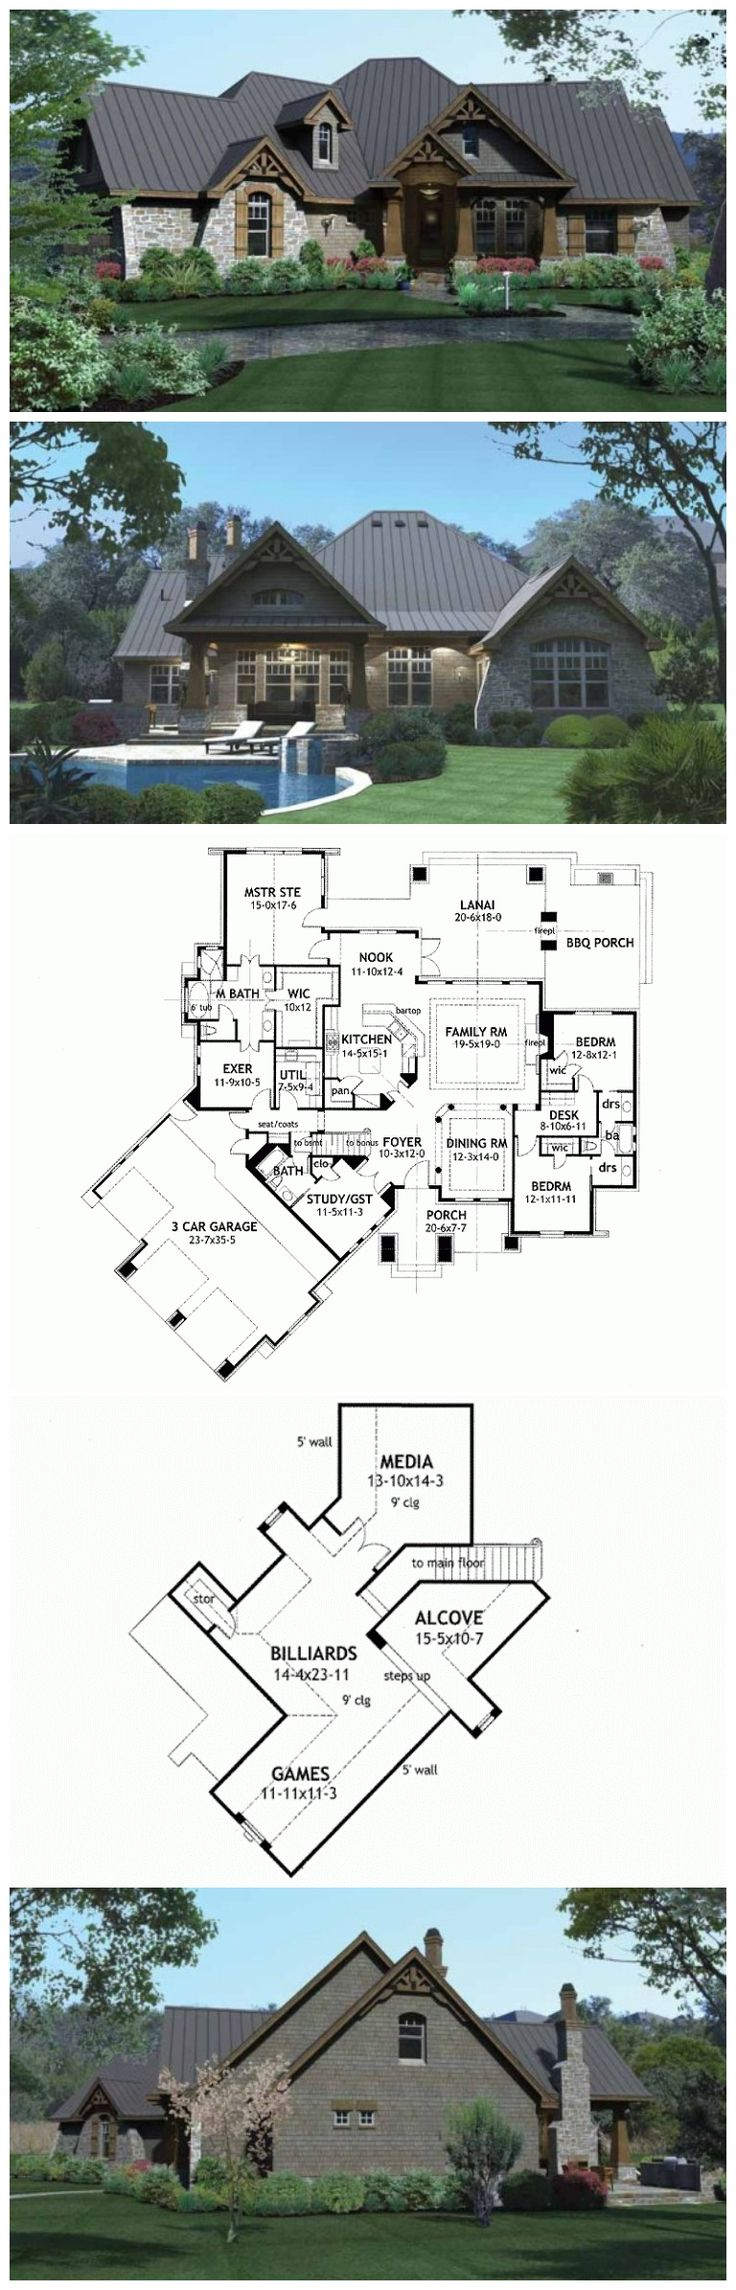 best 25 mansion floor plans ideas on pinterest victorian house craftman house plans hwepl73227